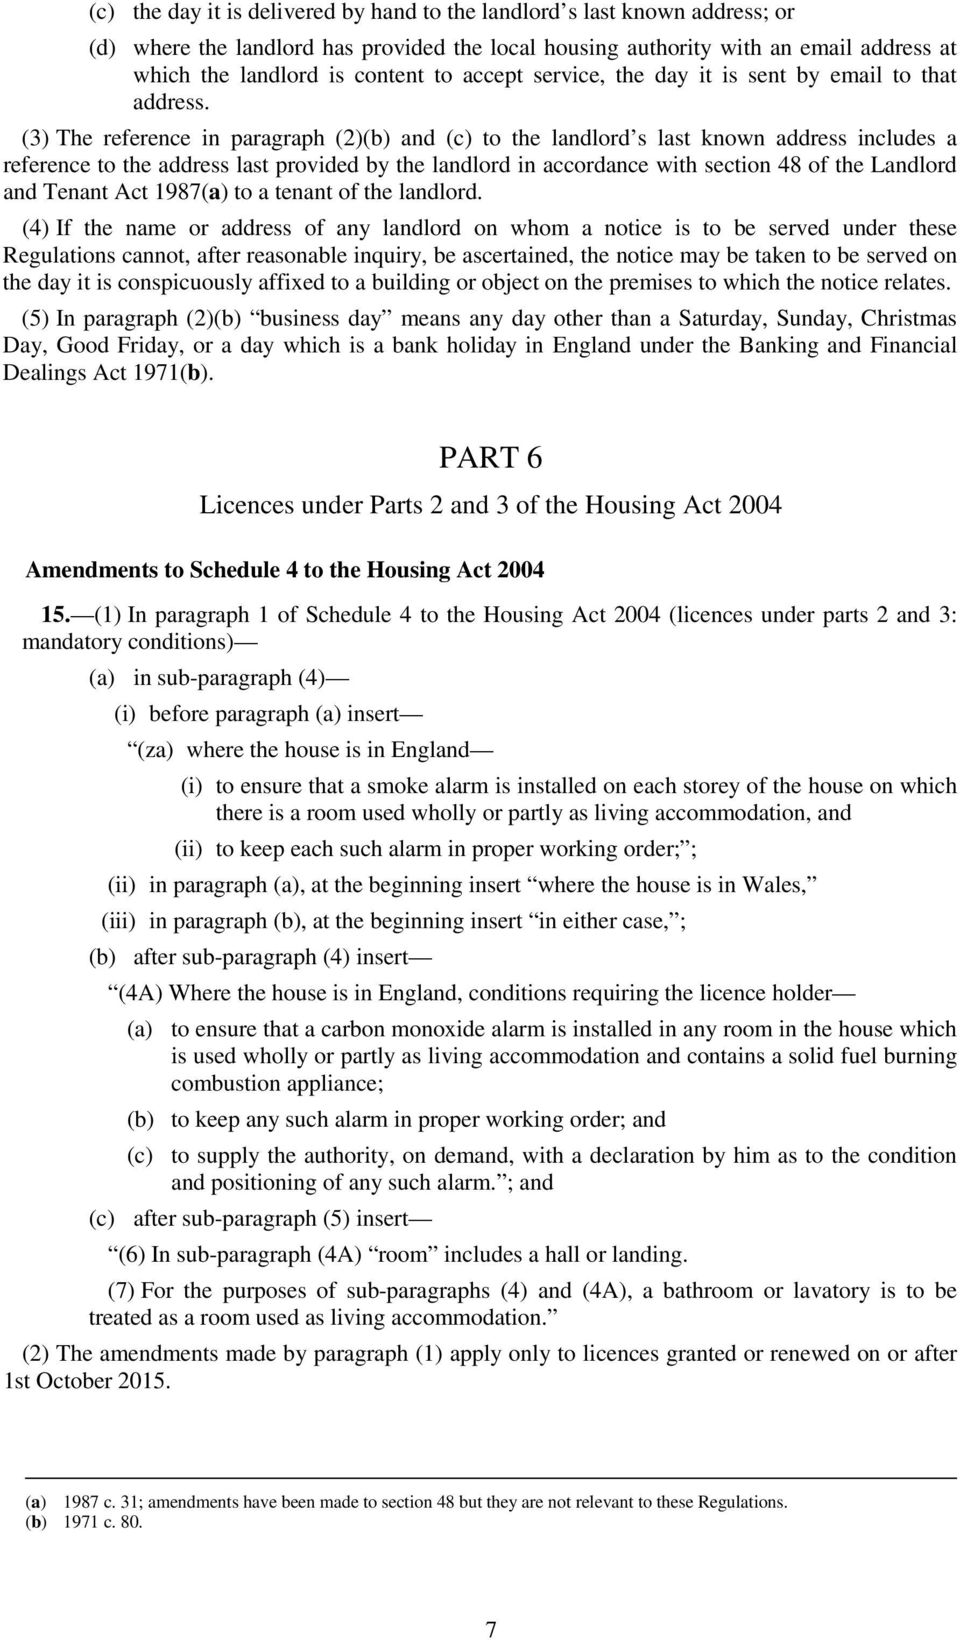 (3) The reference in paragraph (2)(b) and (c) to the landlord s last known address includes a reference to the address last provided by the landlord in accordance with section 48 of the Landlord and